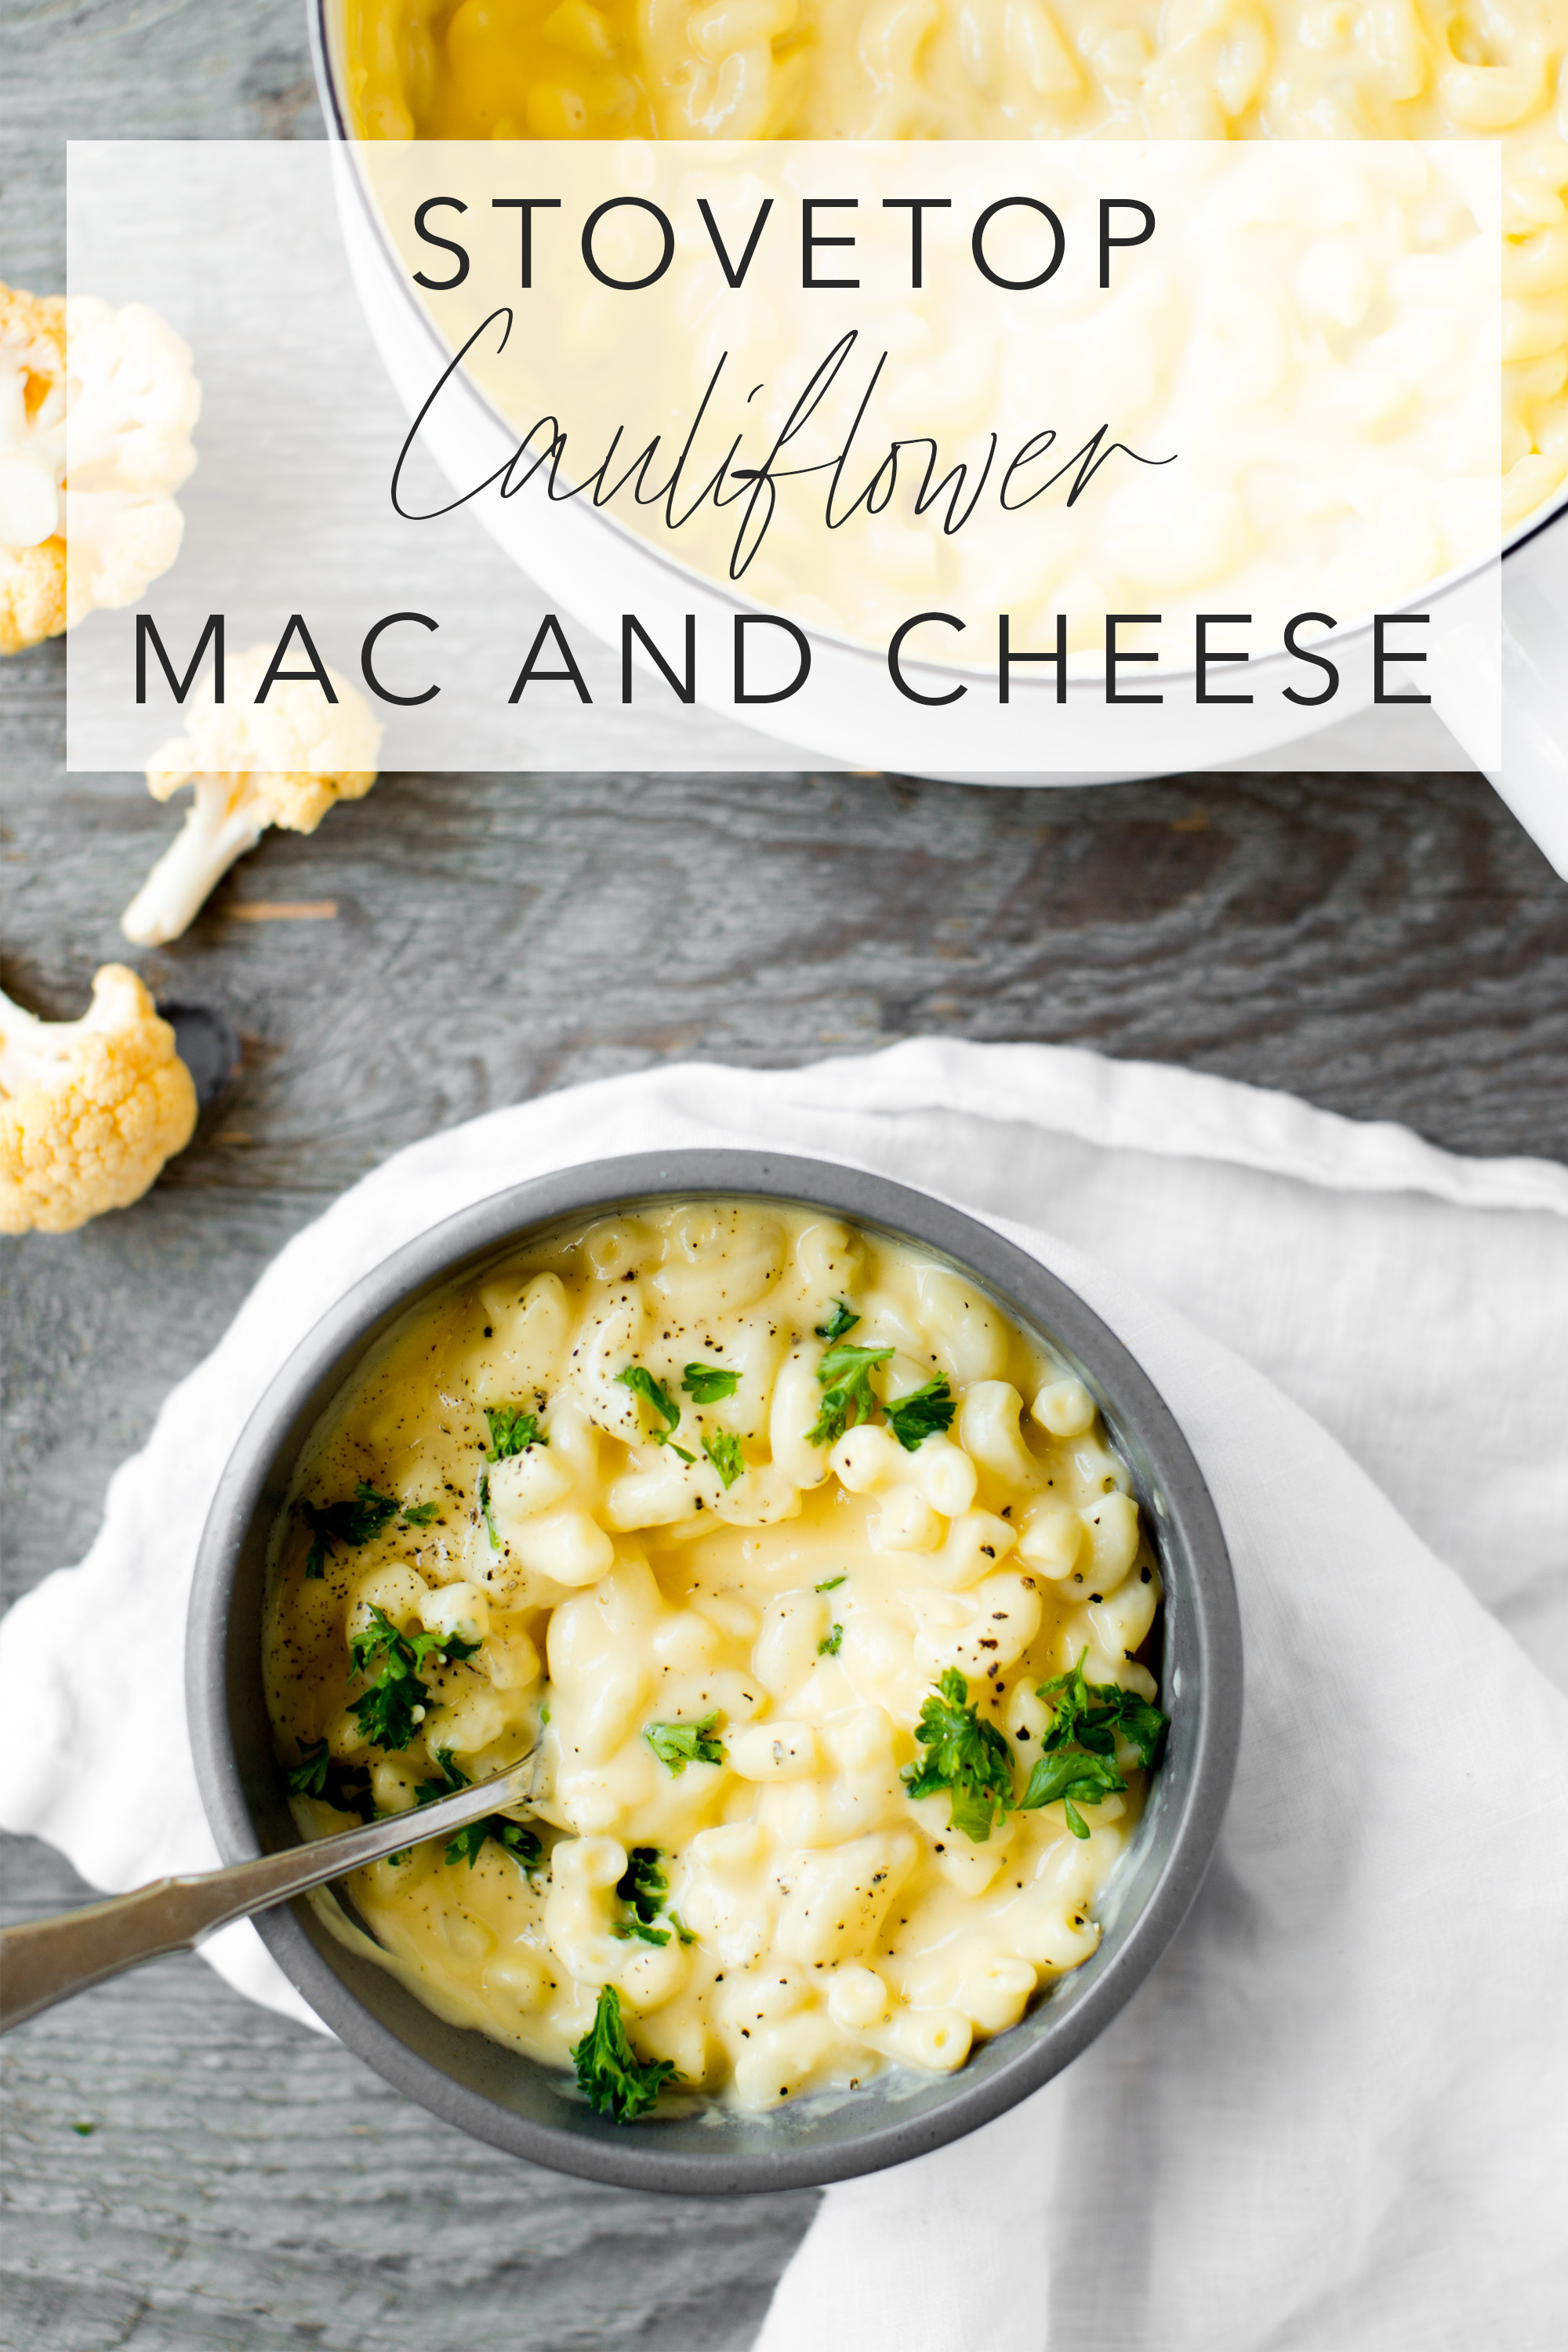 stovetop cauliflower mac and cheese in a bowl with a gray background and text overlay